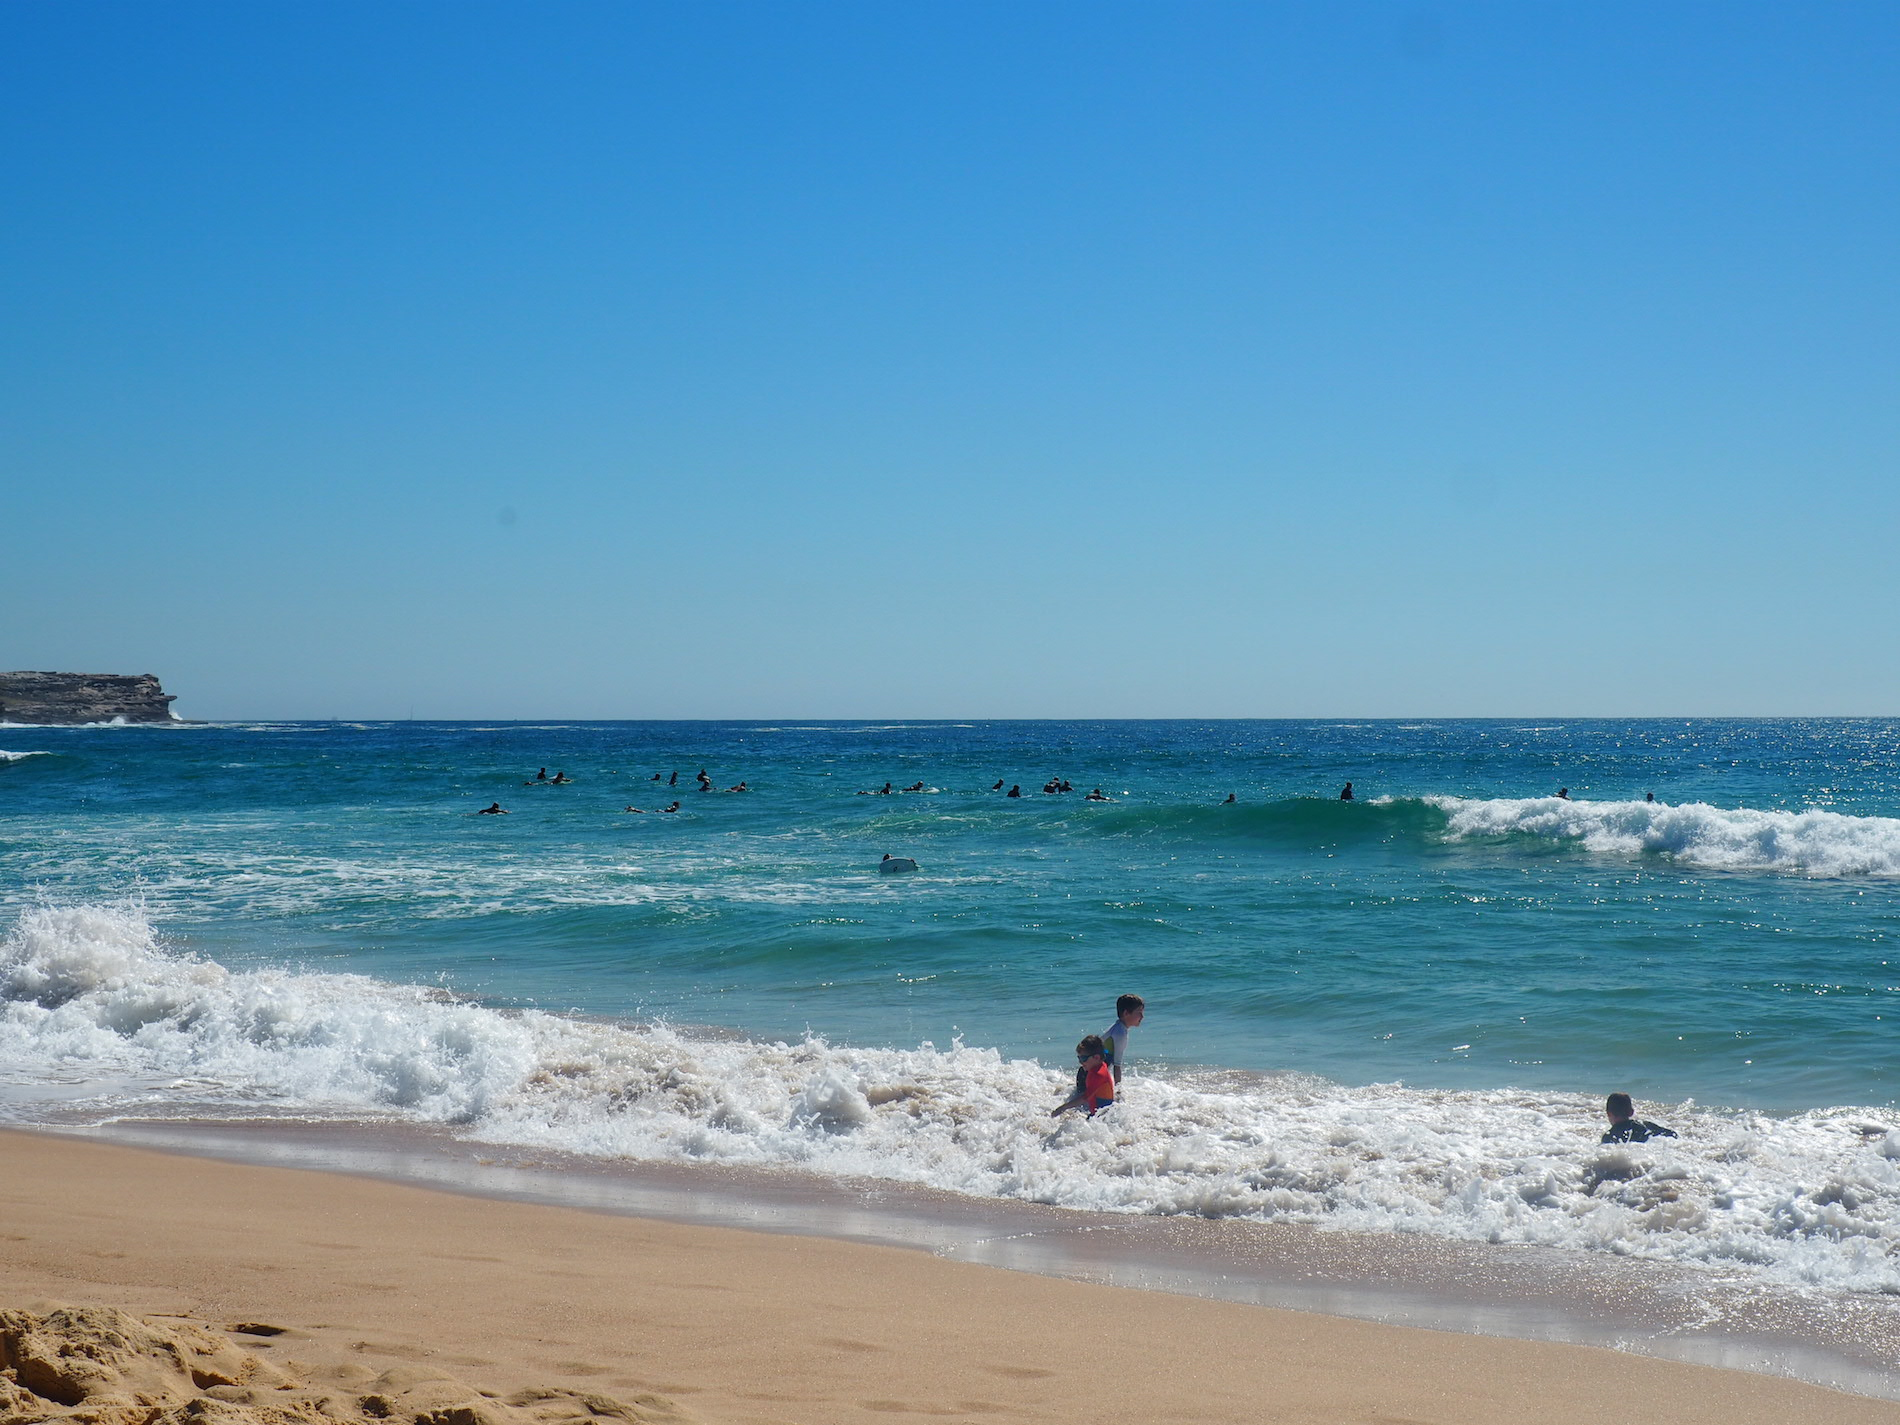 maroubra_beach_02